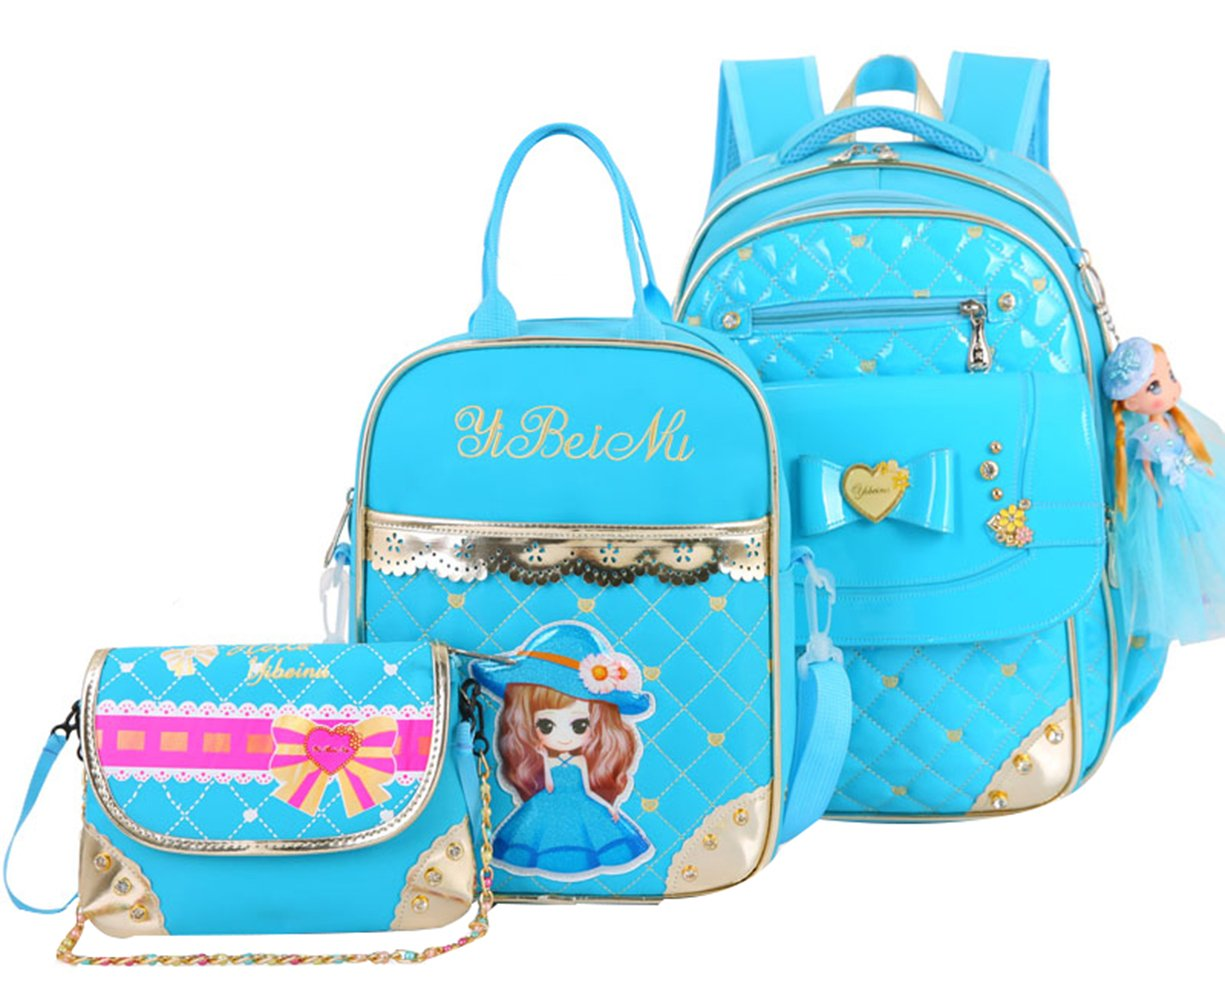 StyleB bluee3Sets 25L SellerFun Primary Girls Students Polyester School Backpack and Lunch Bag 2 Sets 3 Sets(25L,StyleA Black2Sets)